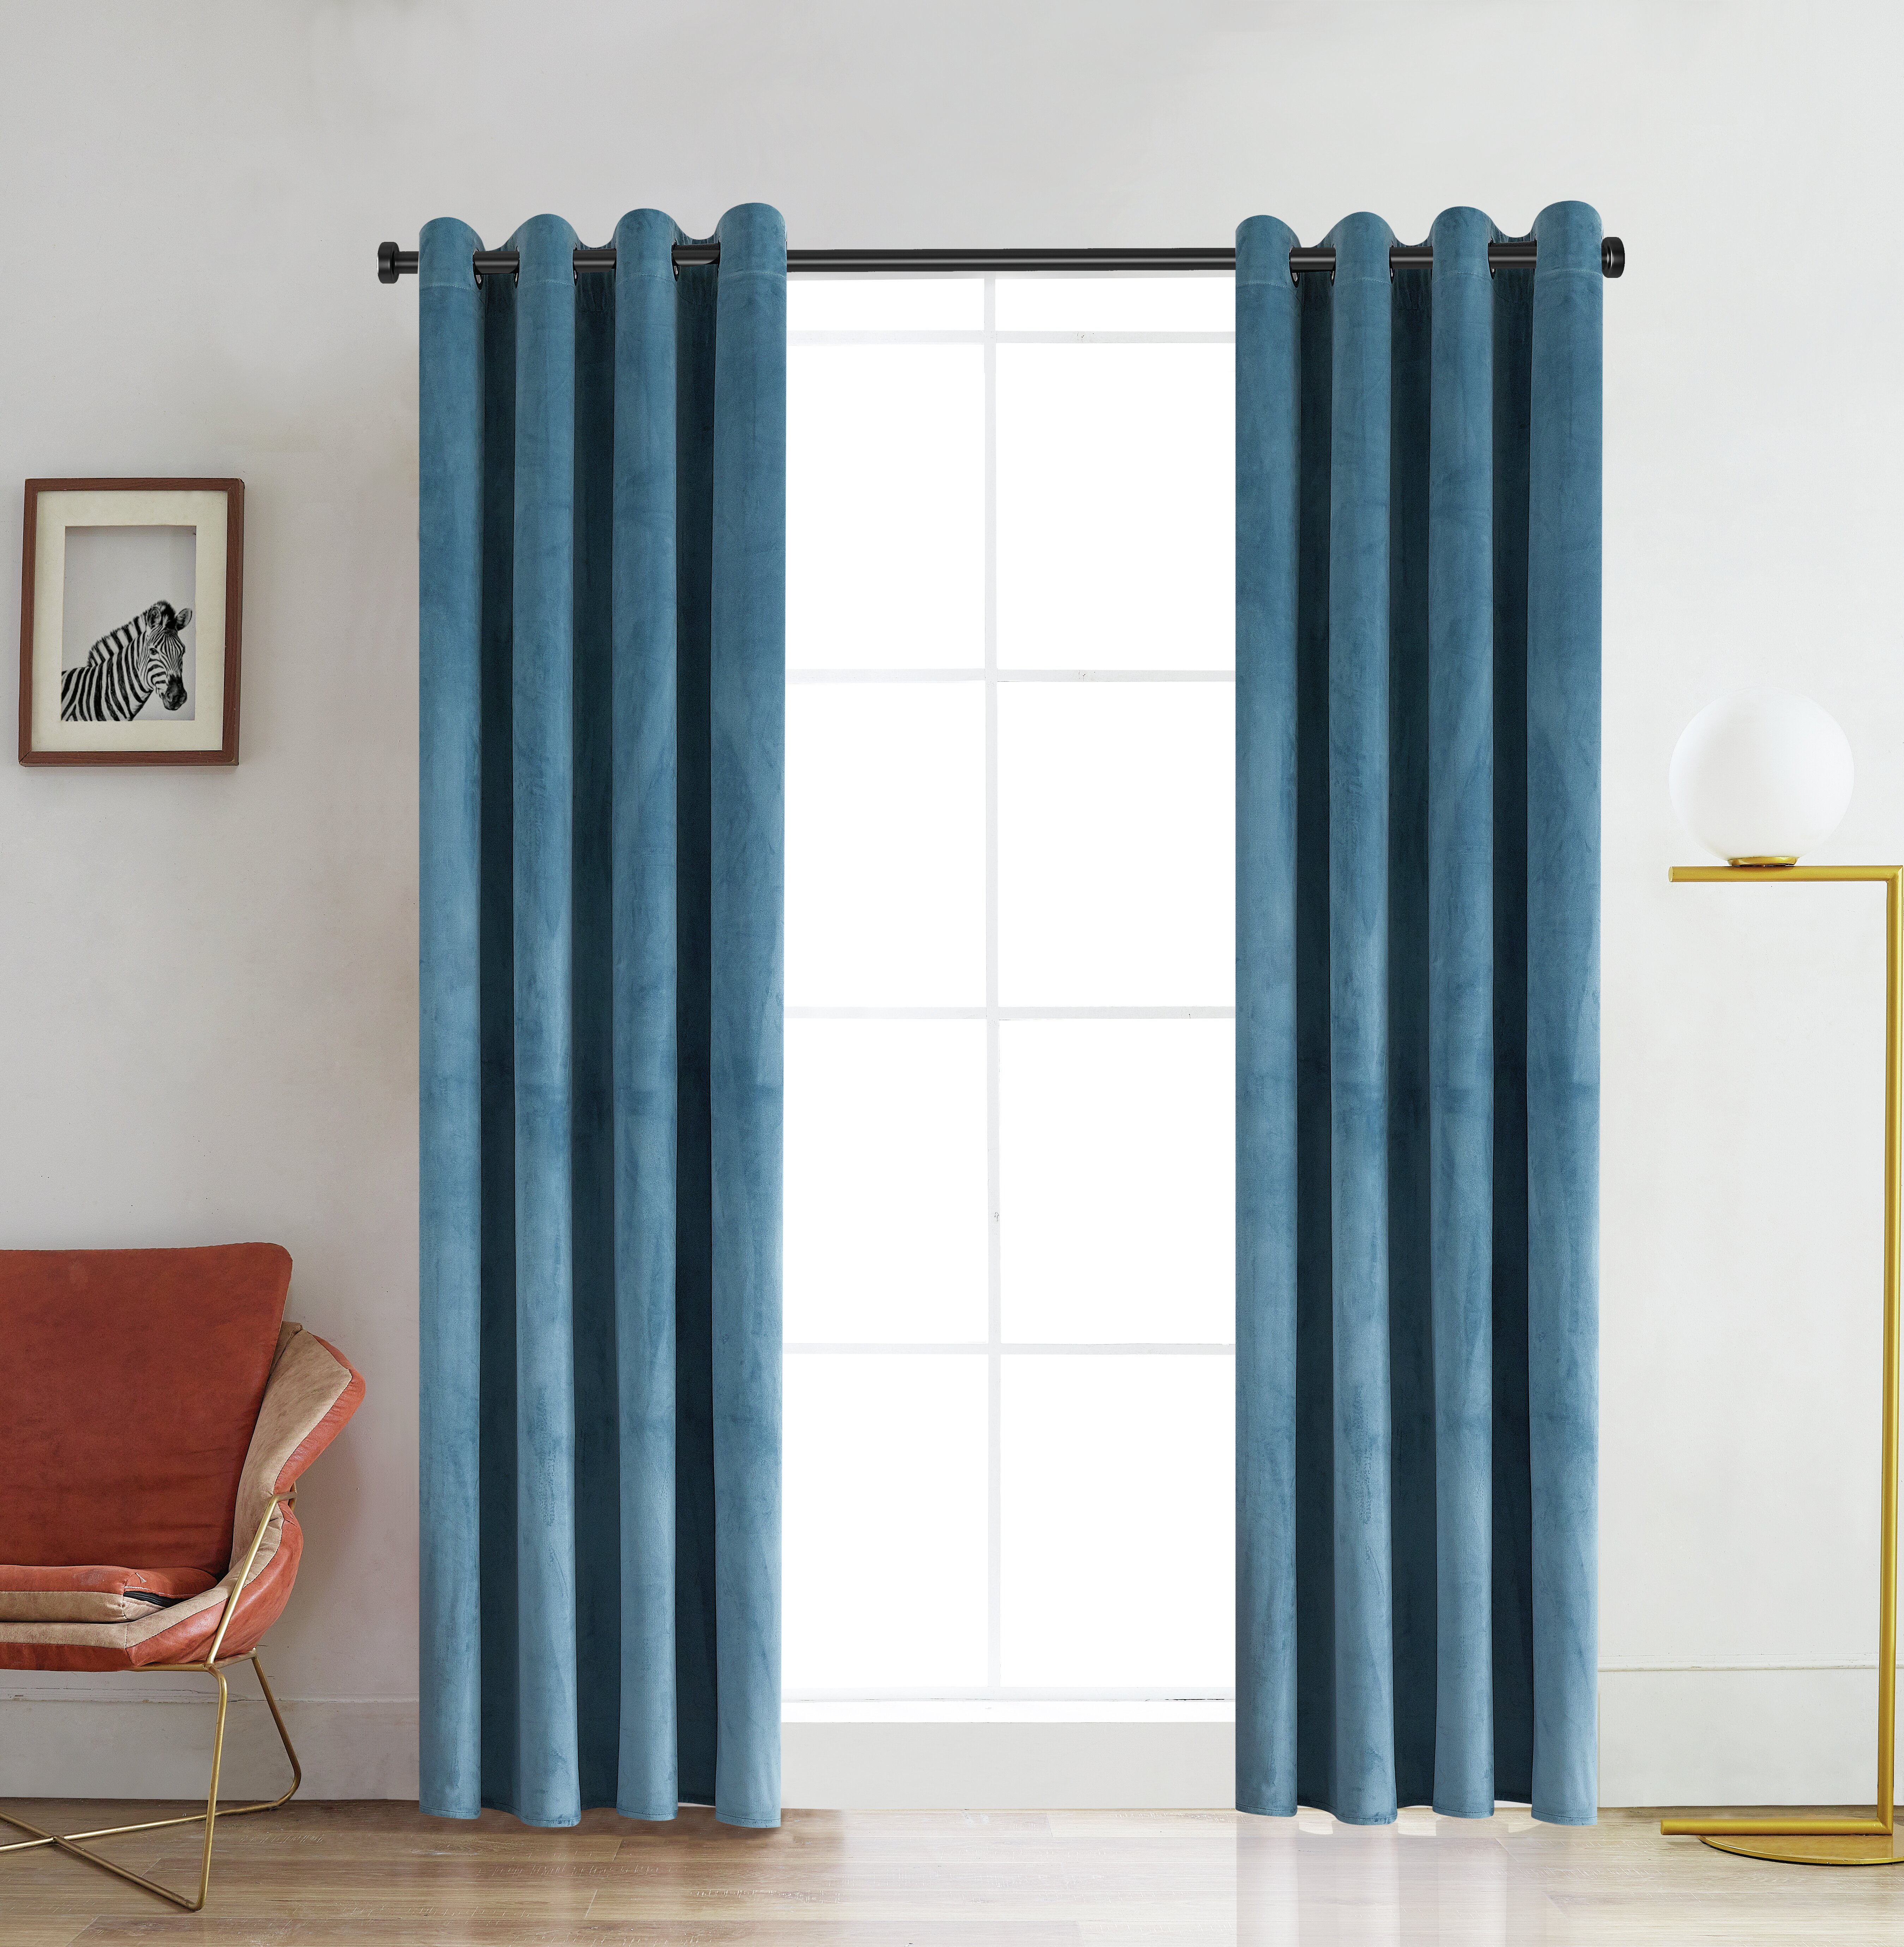 Ciel Solid Color Room Darkening Grommet Single Curtain Panel With Regard To Single Curtain Panels (View 19 of 31)